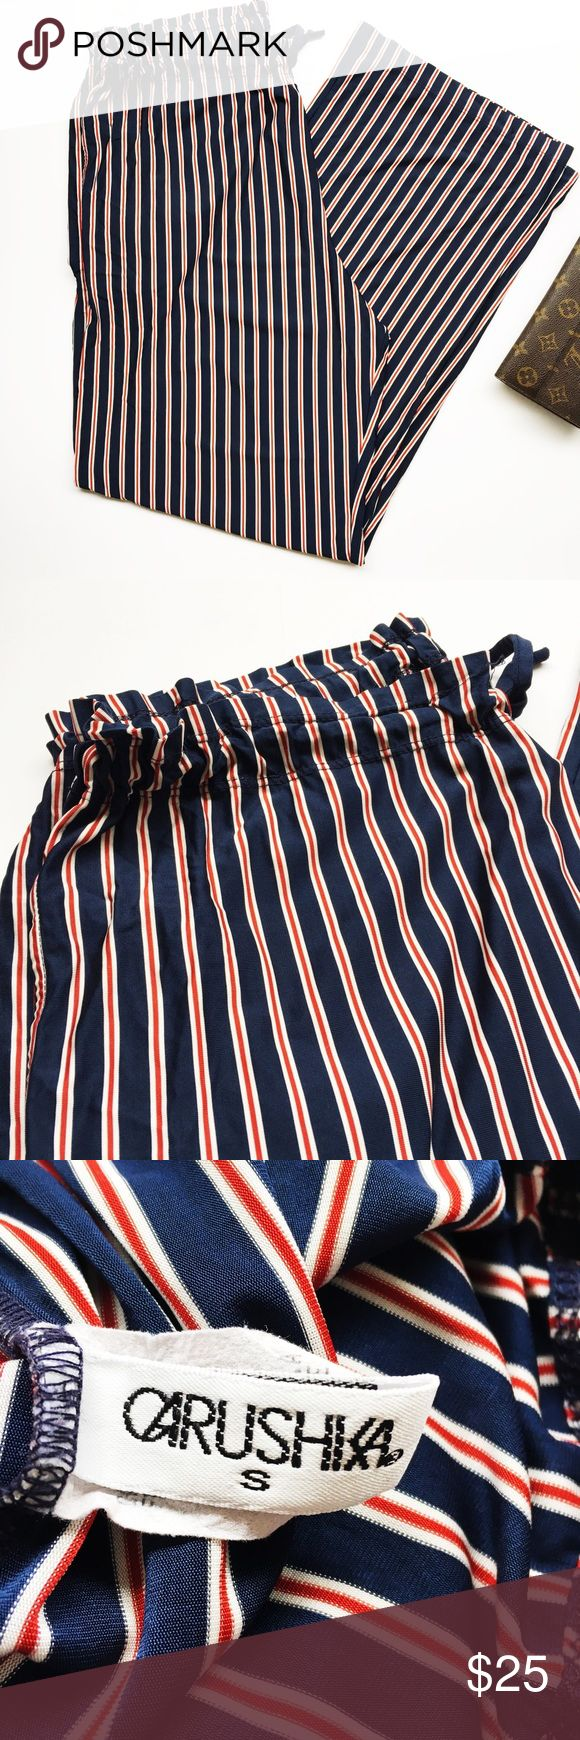 """PALAZZO pants By LA designer Carushka Jarecka. Her designer worn by Demi Moore, Carmen Electra, Gabrielle Reece, Heather Locklear, Brooke Burke and Kate Moss. Fluid stripes in red, white and blue. Drawstring, adjustable waist. Inseam 31.5"""".  All images are by GlamintheCity.   PRICE IS FIRM.   ✨From personal collection ✨Shipped immediately ✨Smoke/Pet free   ❌Lowball ❌Trade ❌Offsite transaction Carushka Pants"""